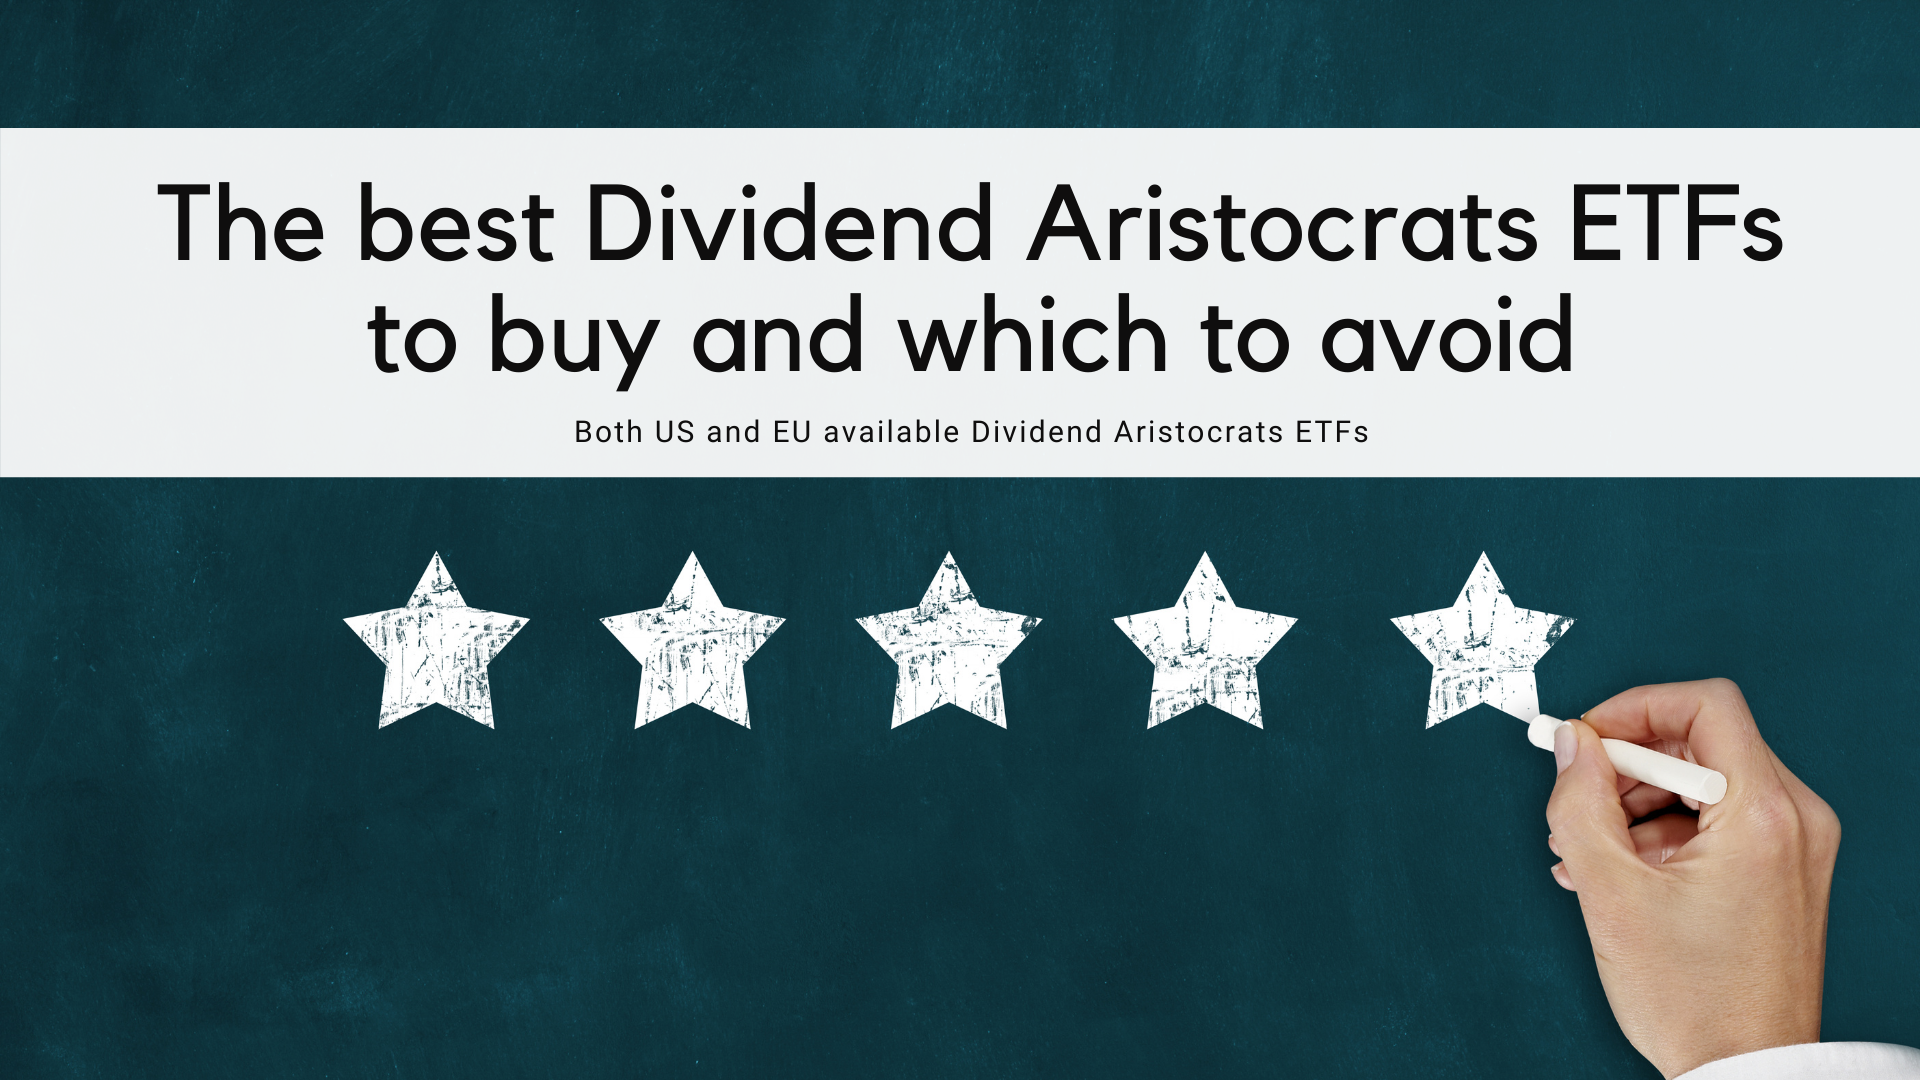 The best Dividend Aristocrats ETFs to buy and which to avoid